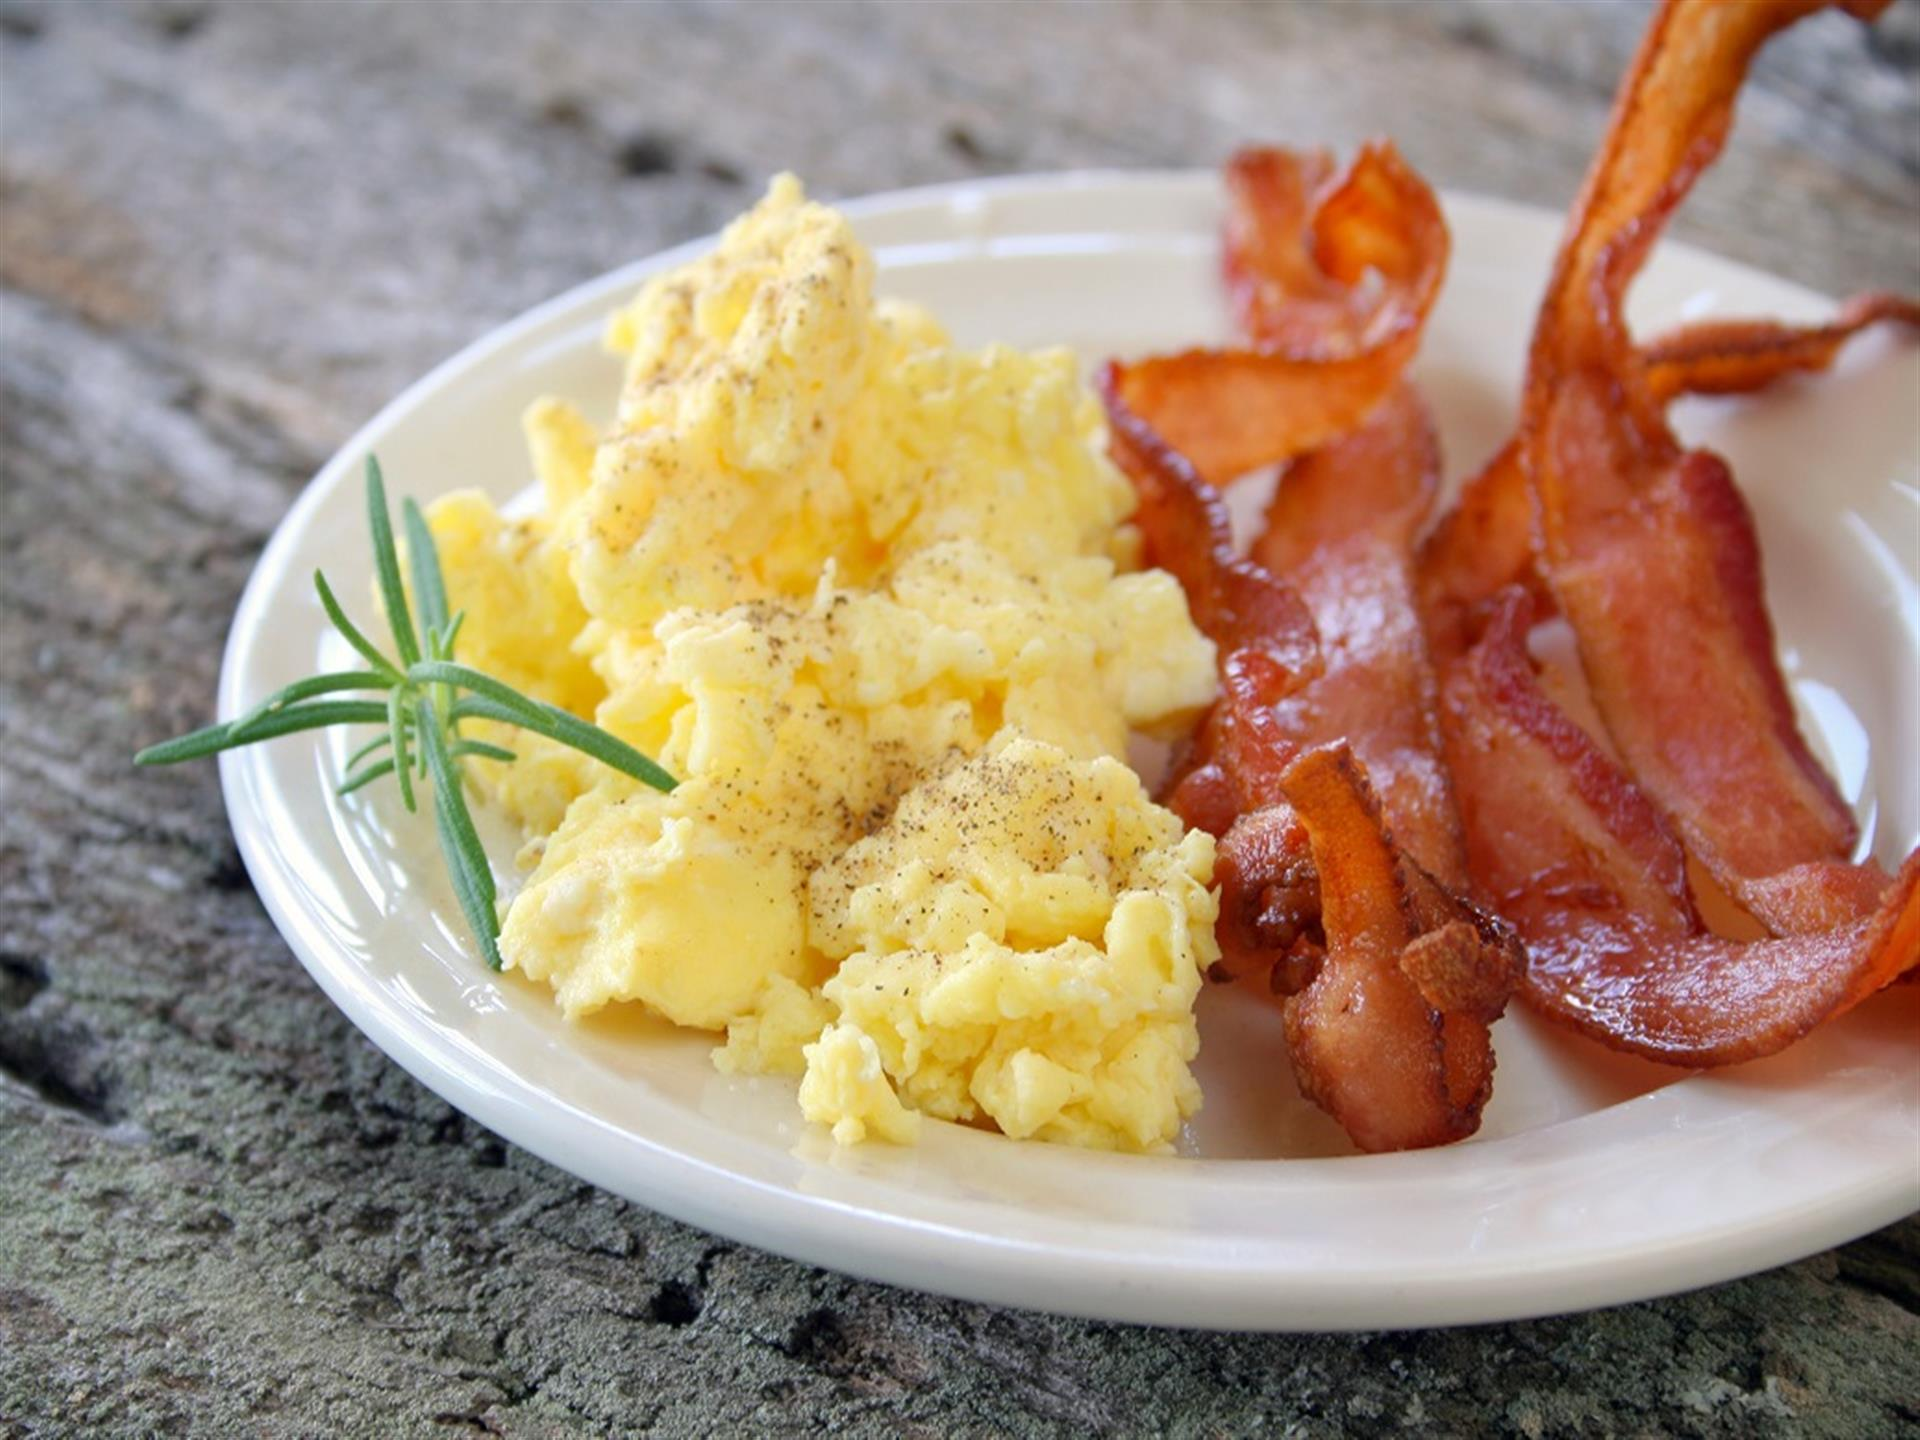 scrambled eggs and bacon on a plate